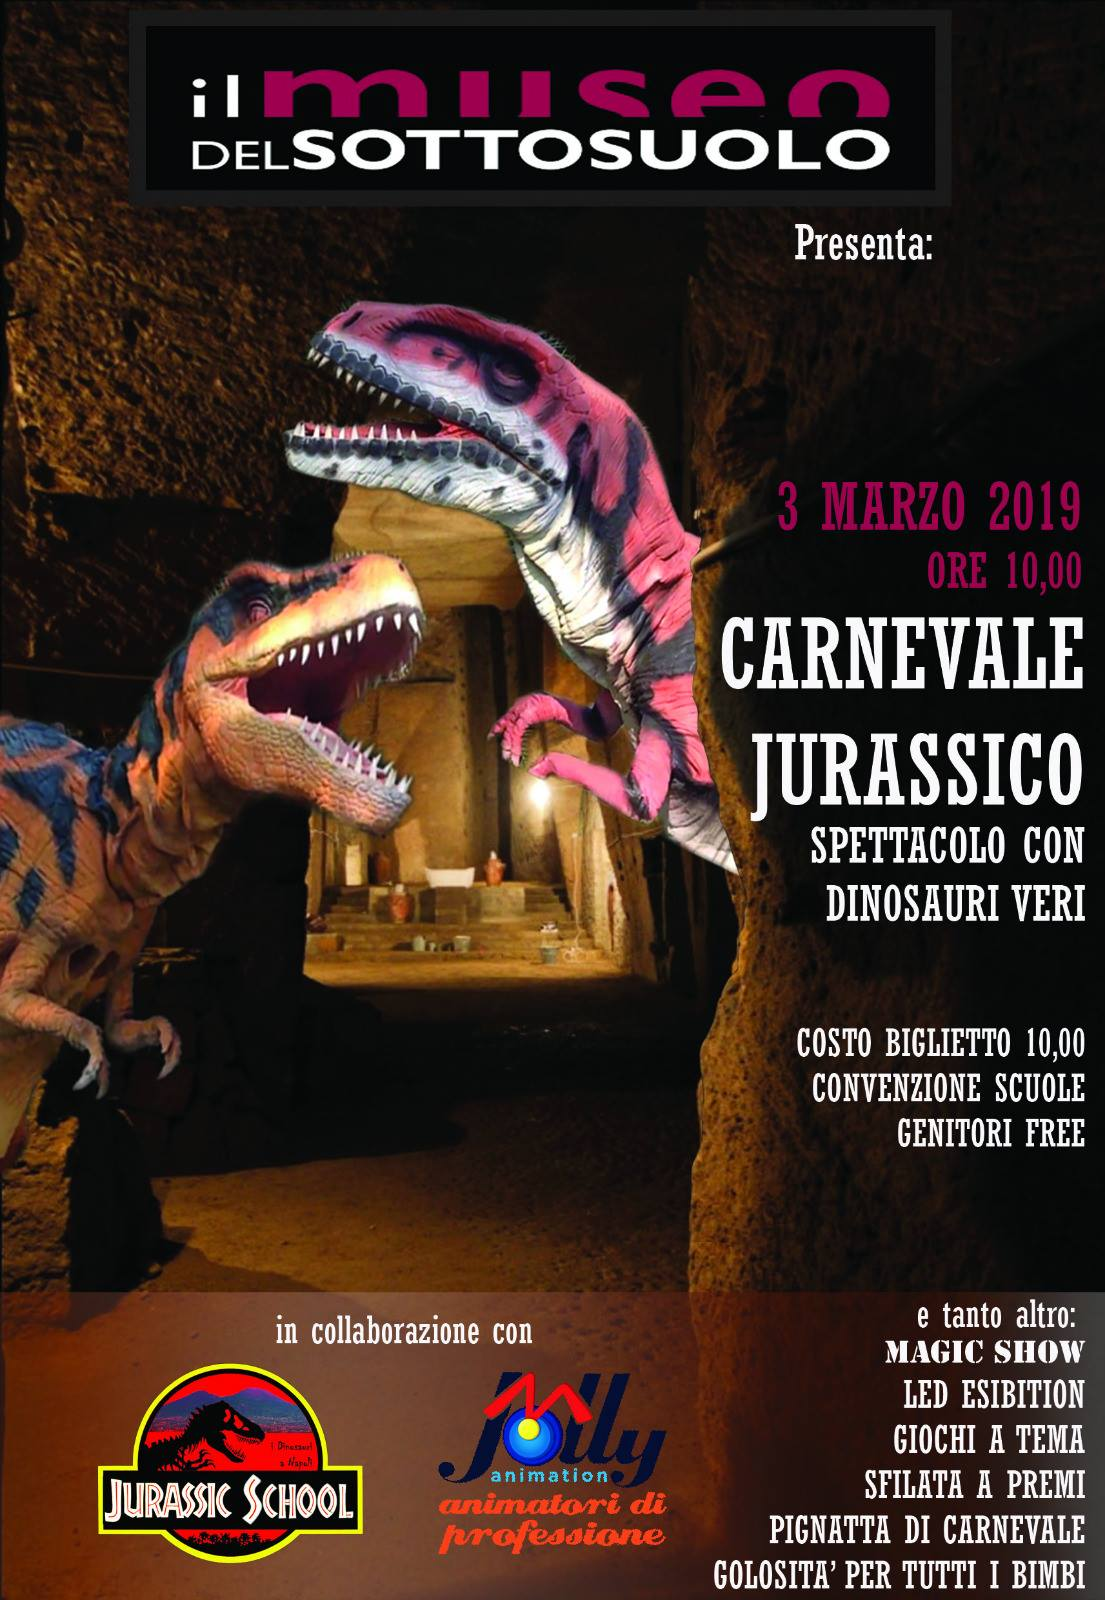 Carnevale Jurassico con Jolly Animation